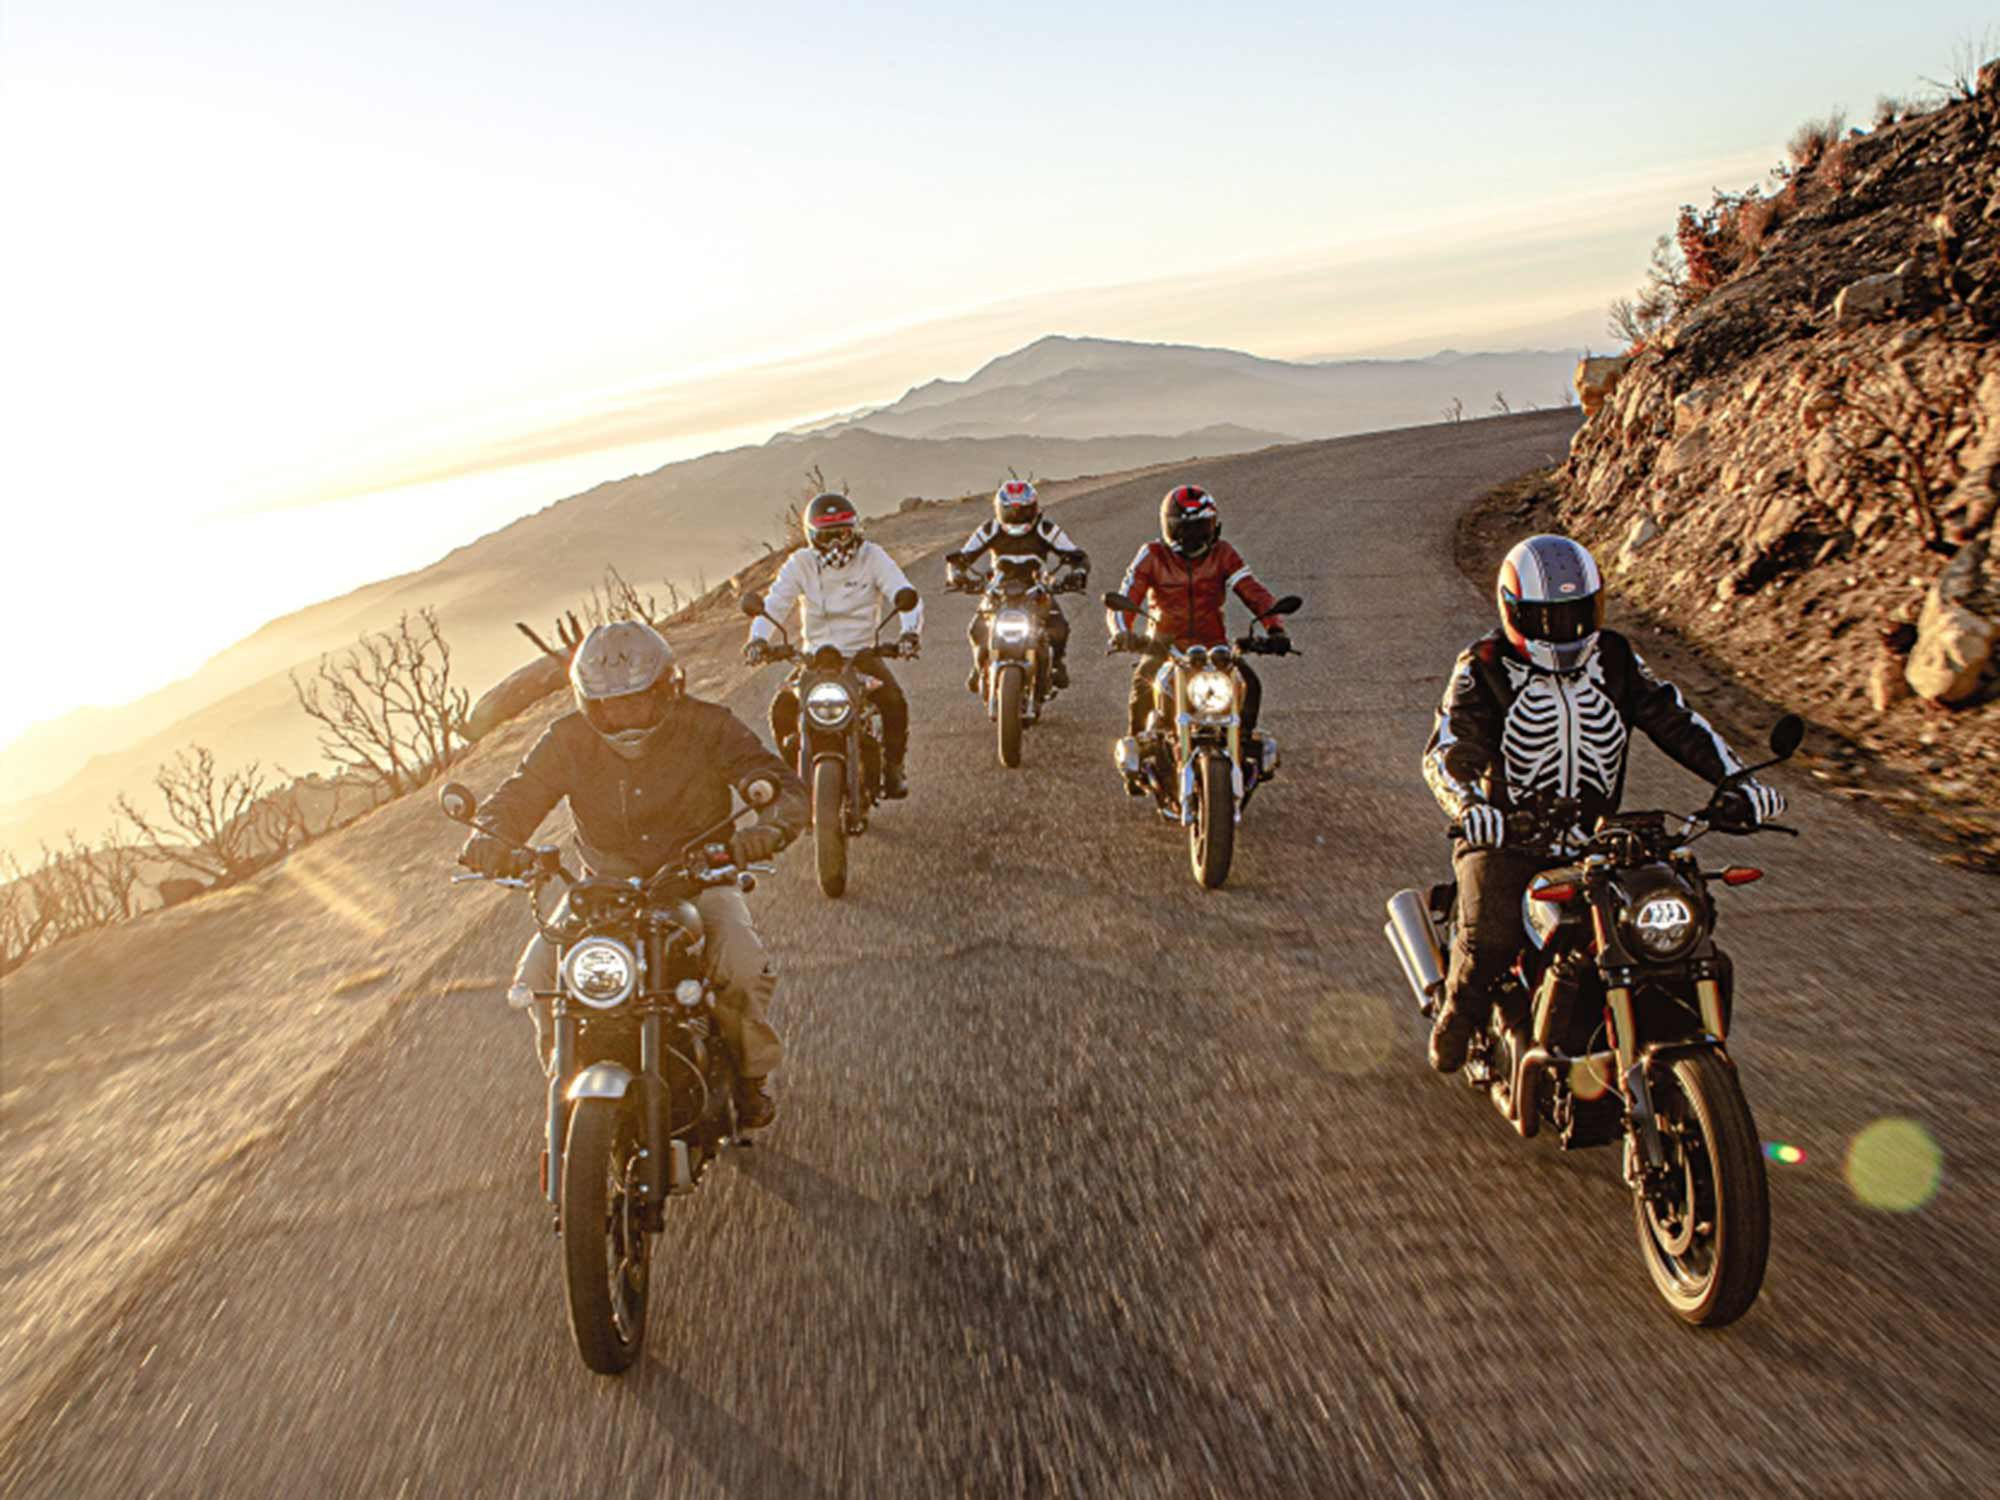 Chasing fun, spirit, and freedom on five motorcycles that recall the essence of riding.